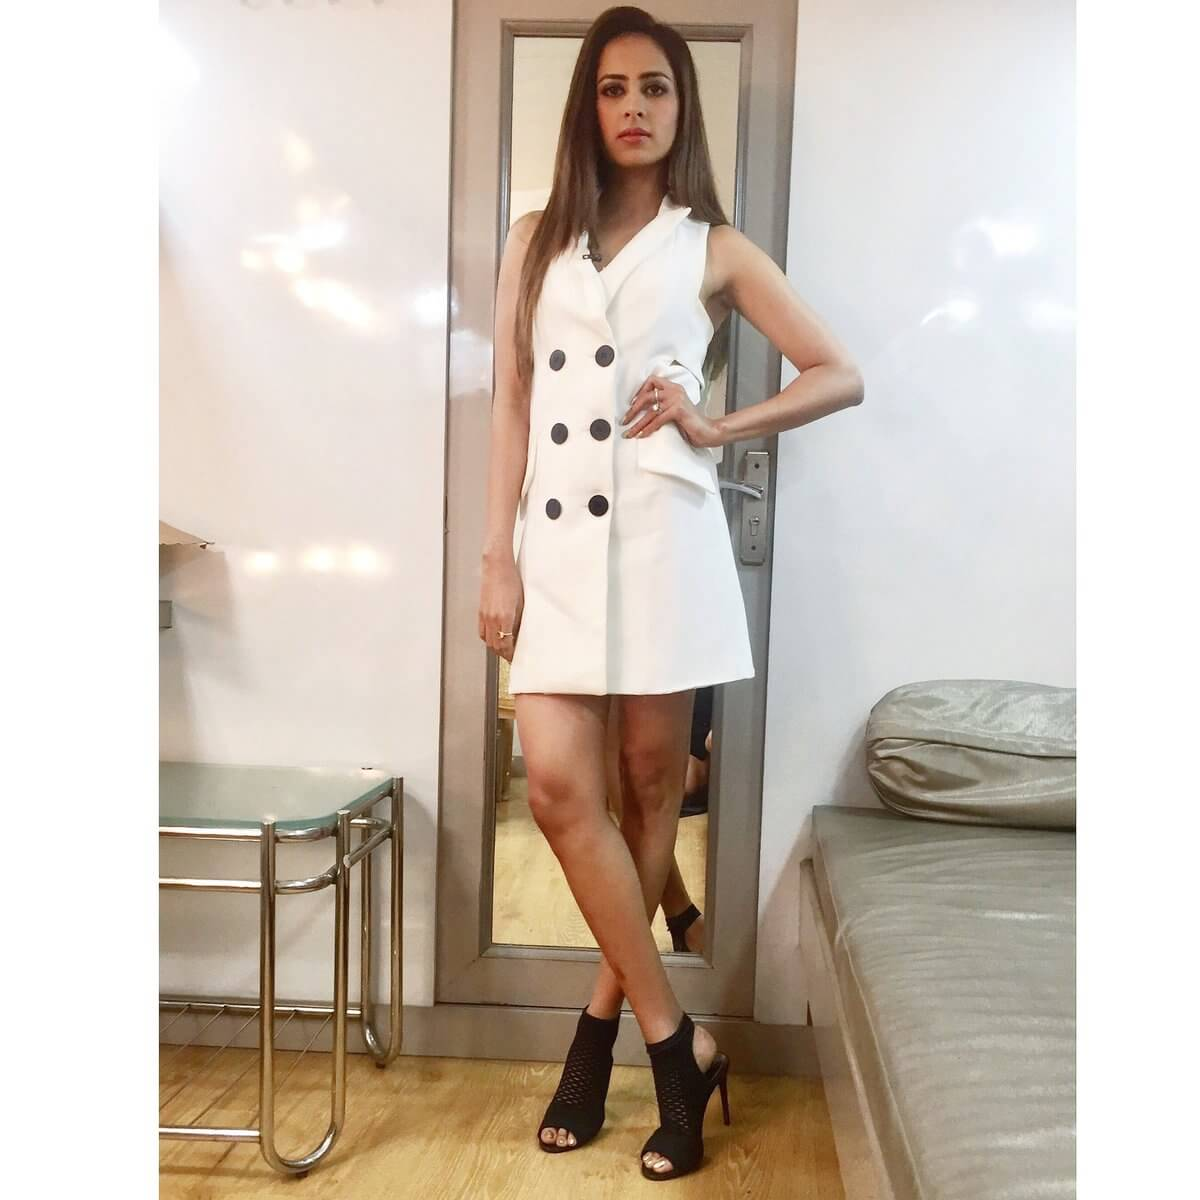 Sargun Mehta Dubey Date Of Birth, Biography, Age, Husband, Family, Height, Images(photos), Wiki, Instagram, Education, Imdb, Facebook, Twitter, Awards (15)